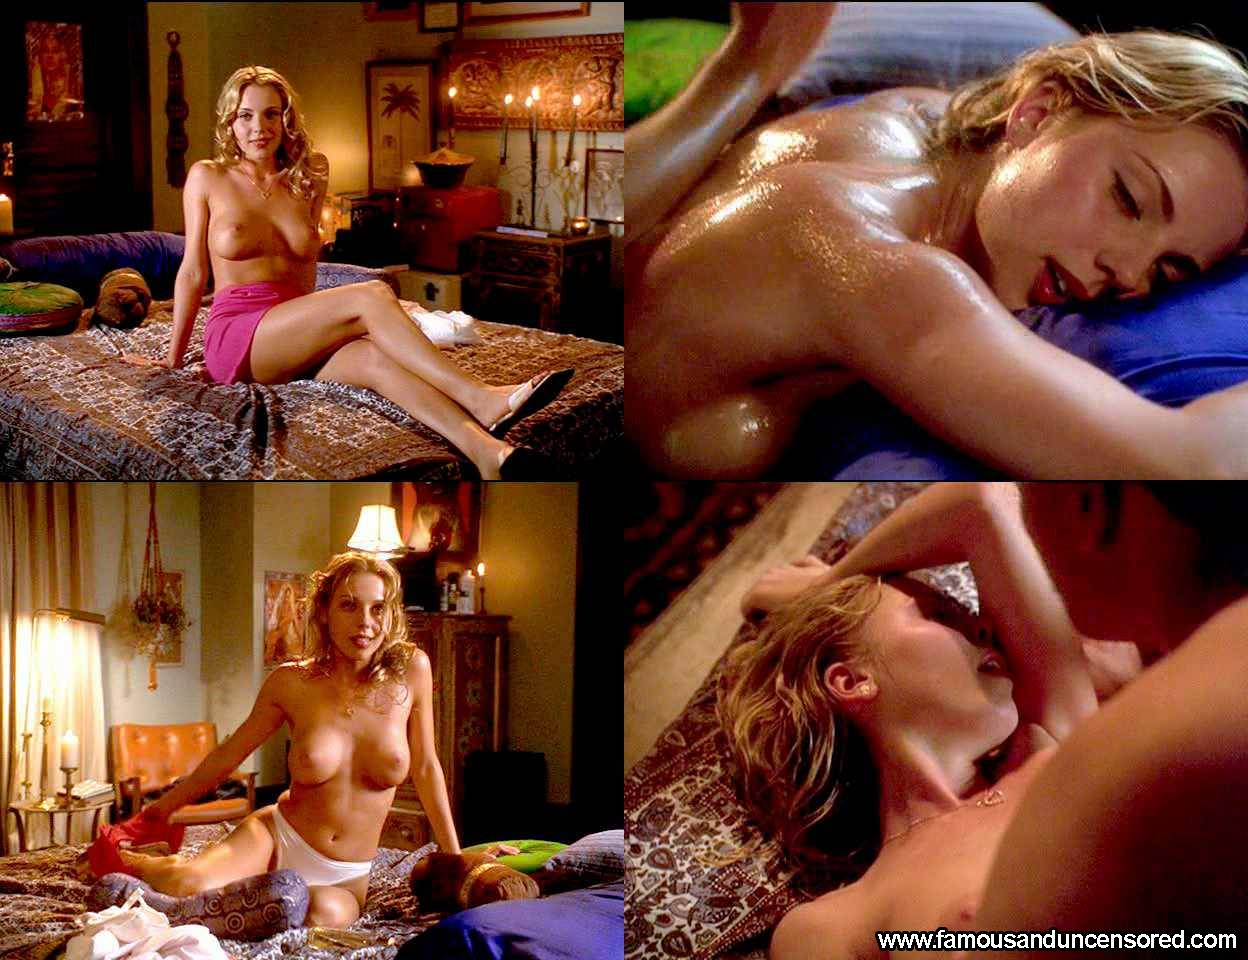 Sorry, does van wilder anal sex scene confirm